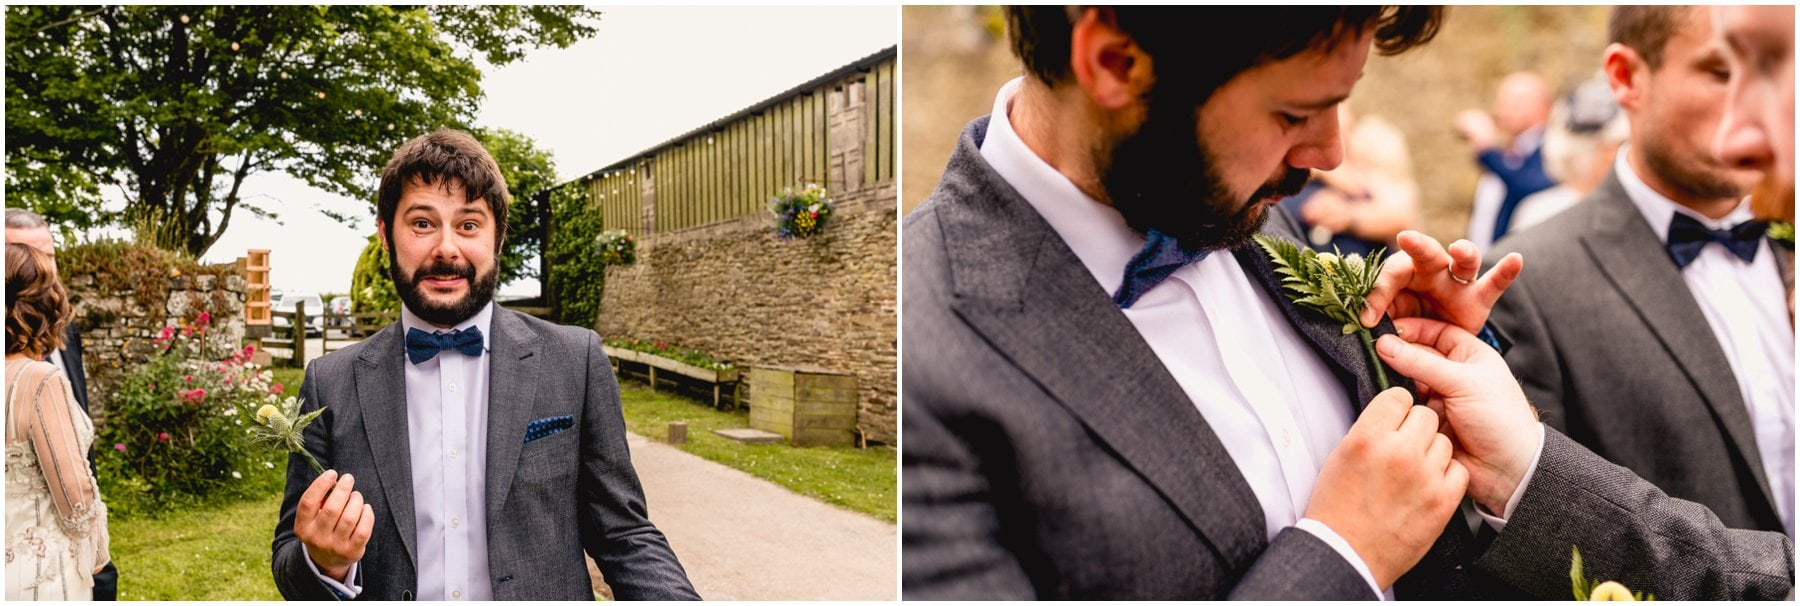 Groom putting on buttonhole.